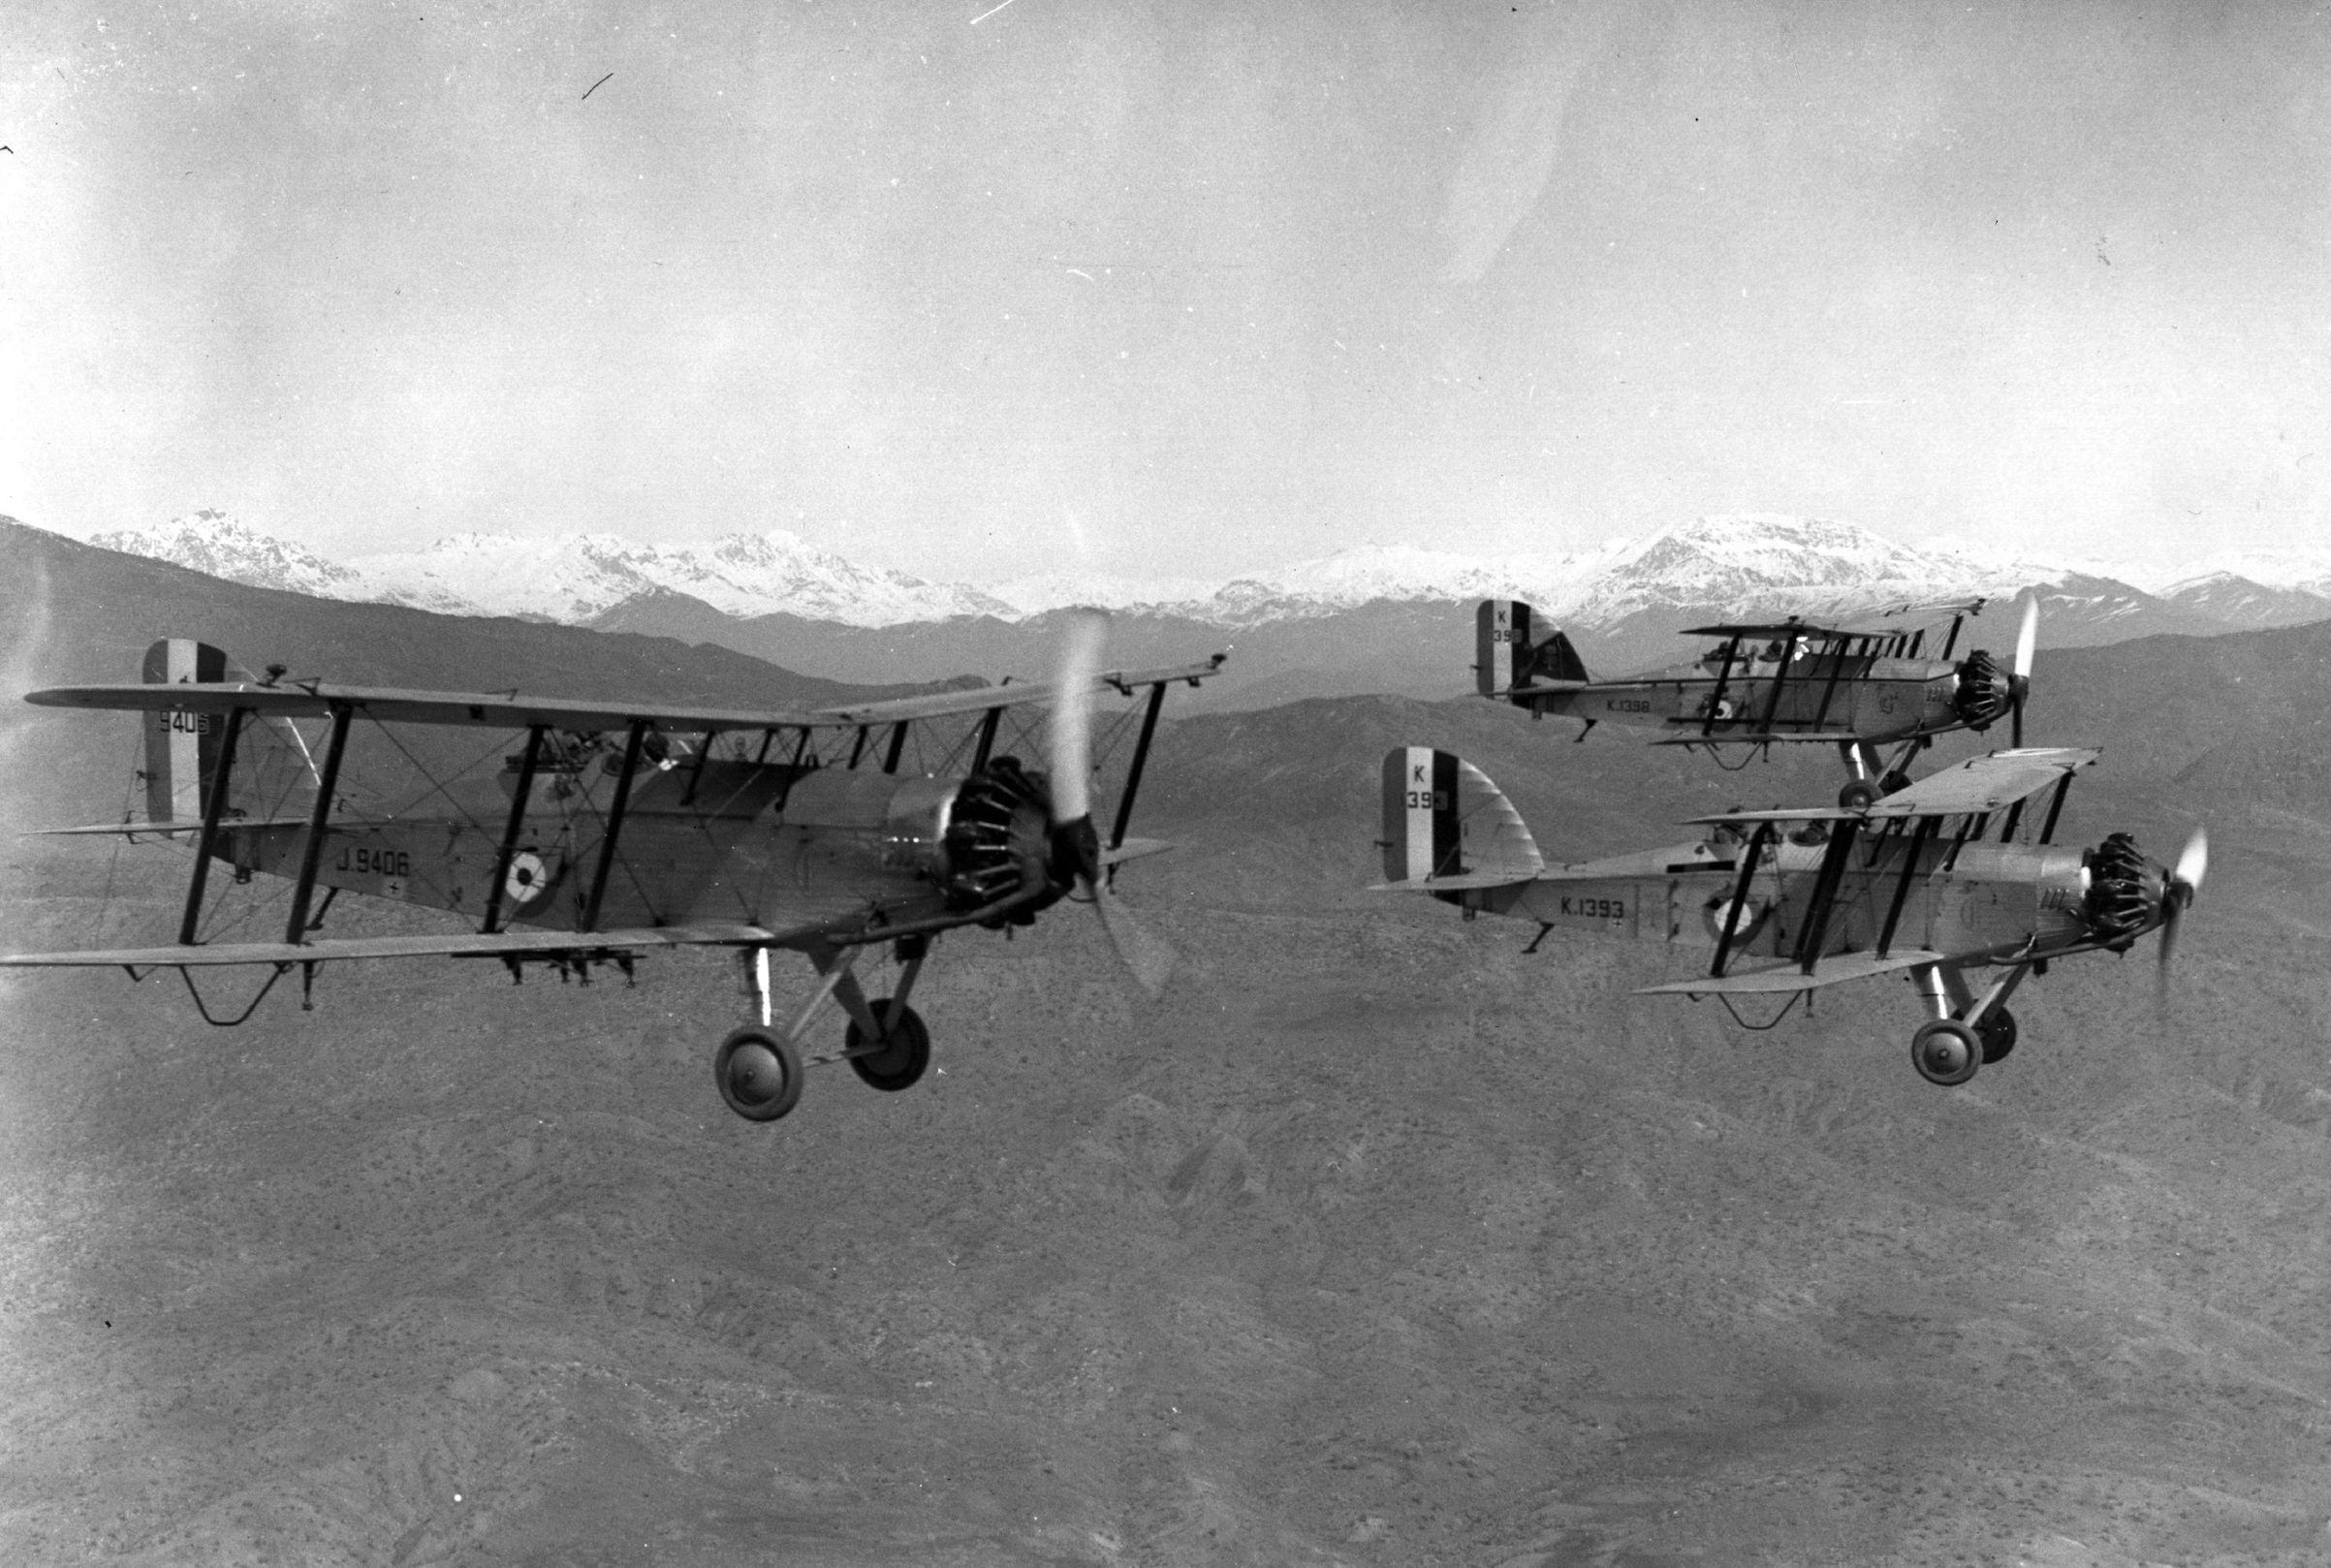 Royal Air Force Westland Wapitis carry out a reconnaissance flight over the mountains of Kurdistan, March 1934.